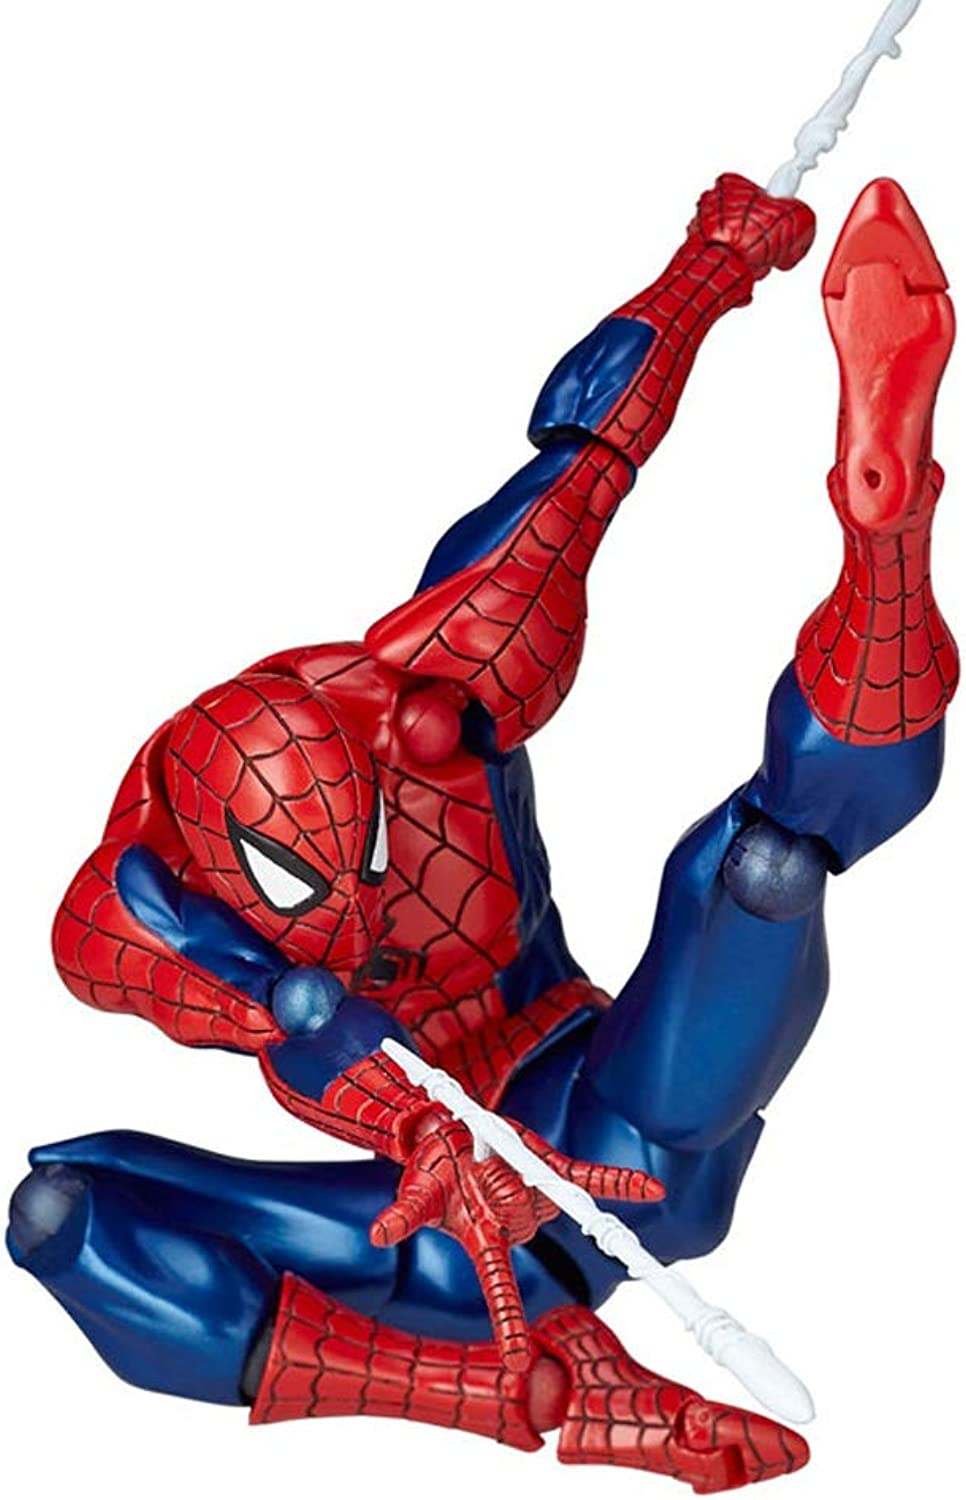 Super Hero Spider-Man Revoltech Action Figure About 160mm ABS & PVC Painted Action Figure